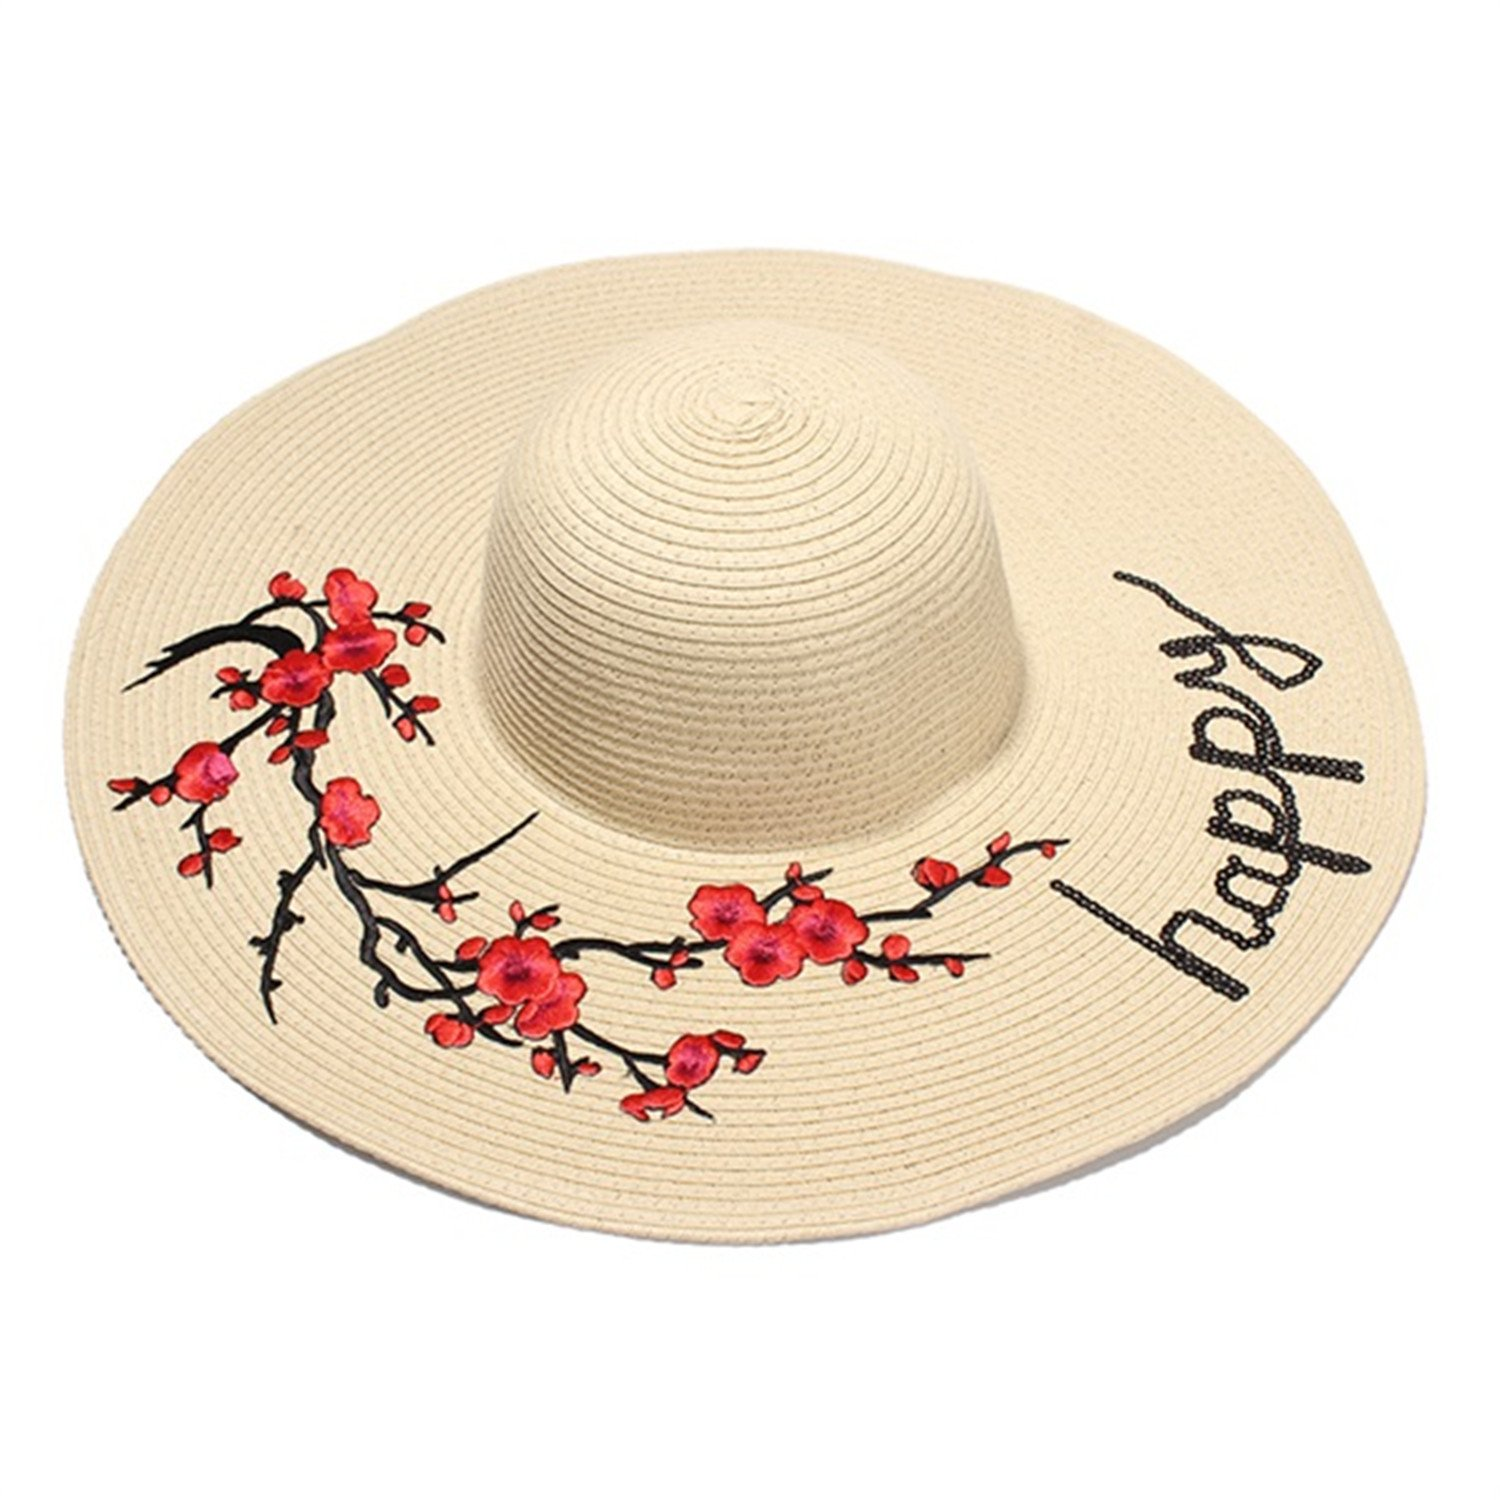 Amazon.com  Donna Pierce Summer Hats For Women Flower Patch Sequin Letter  Embroidery Sun Hat Ladies Large Brim Beach Straw Caps Chapeu Feminino  Brown  ... f1883c1e18c6